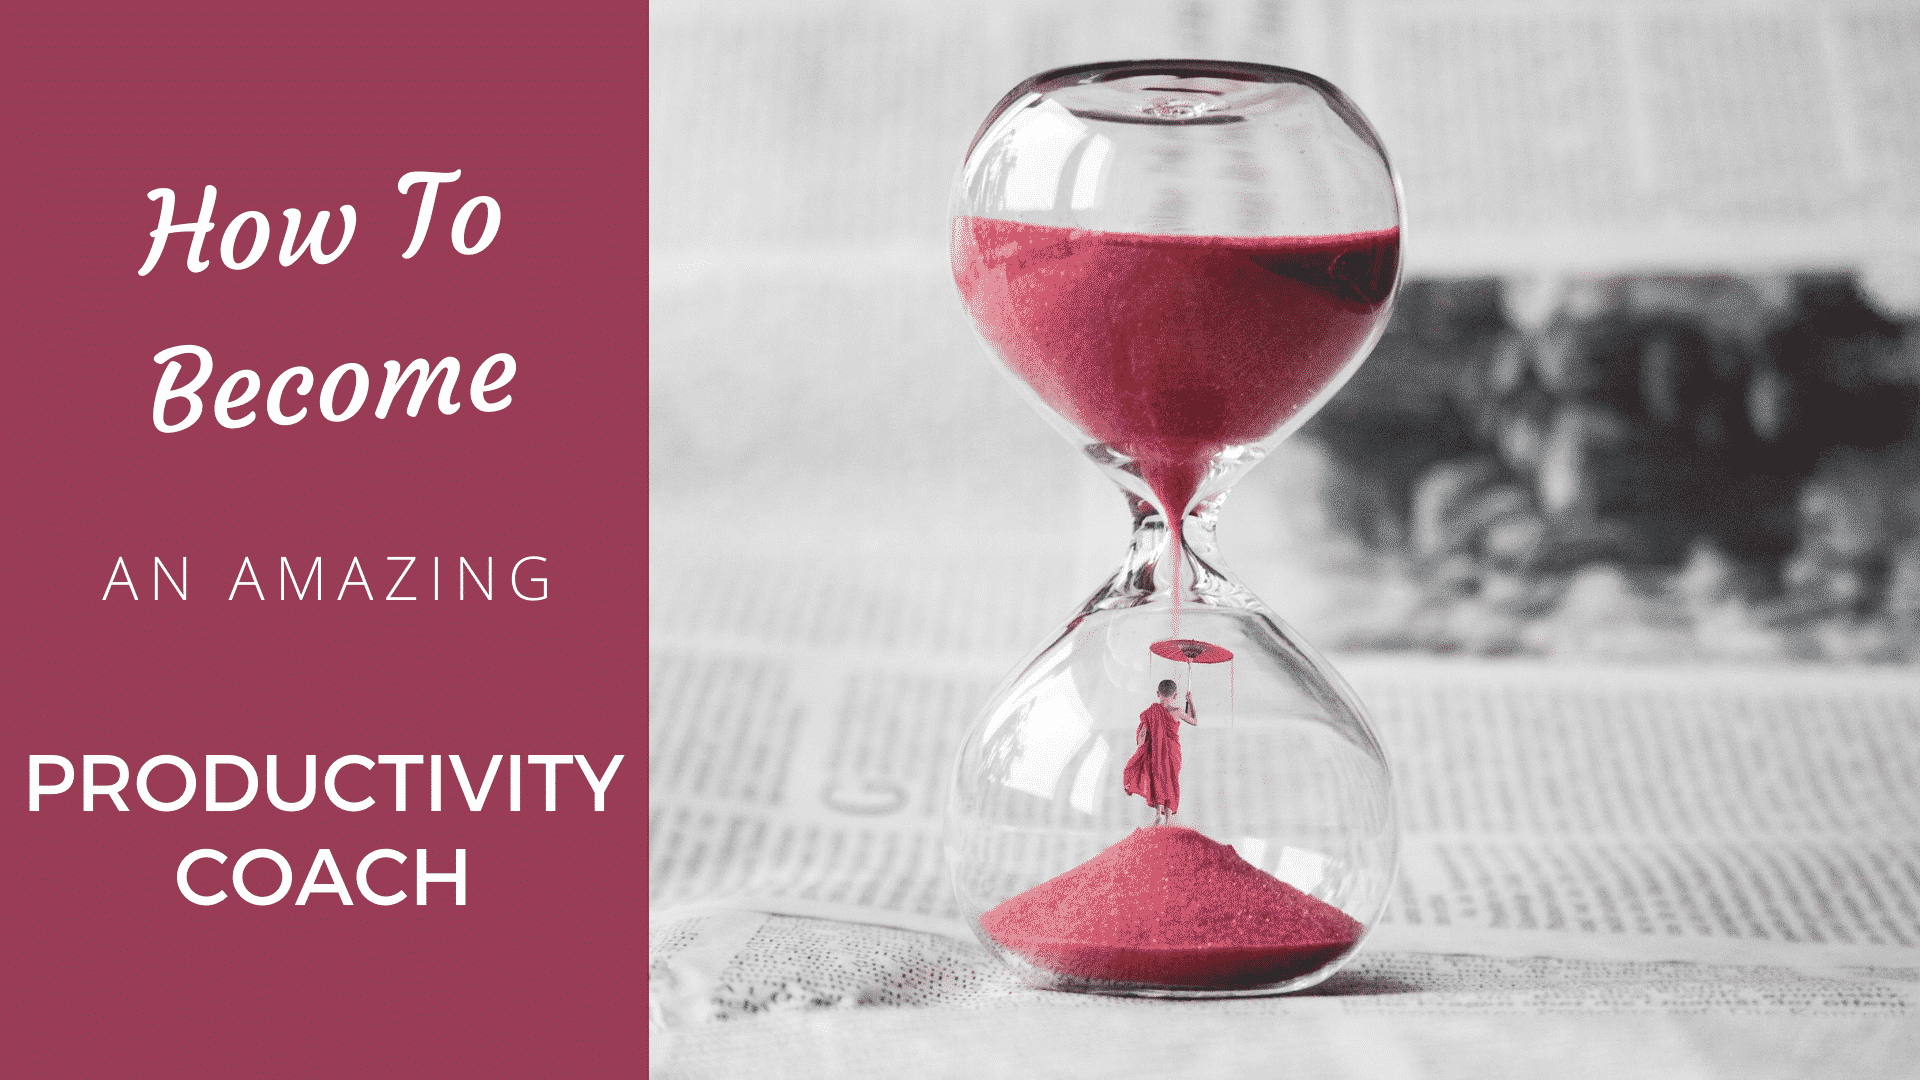 How to Become an Amazing Productivity Coach in 2020? Productivity Coach